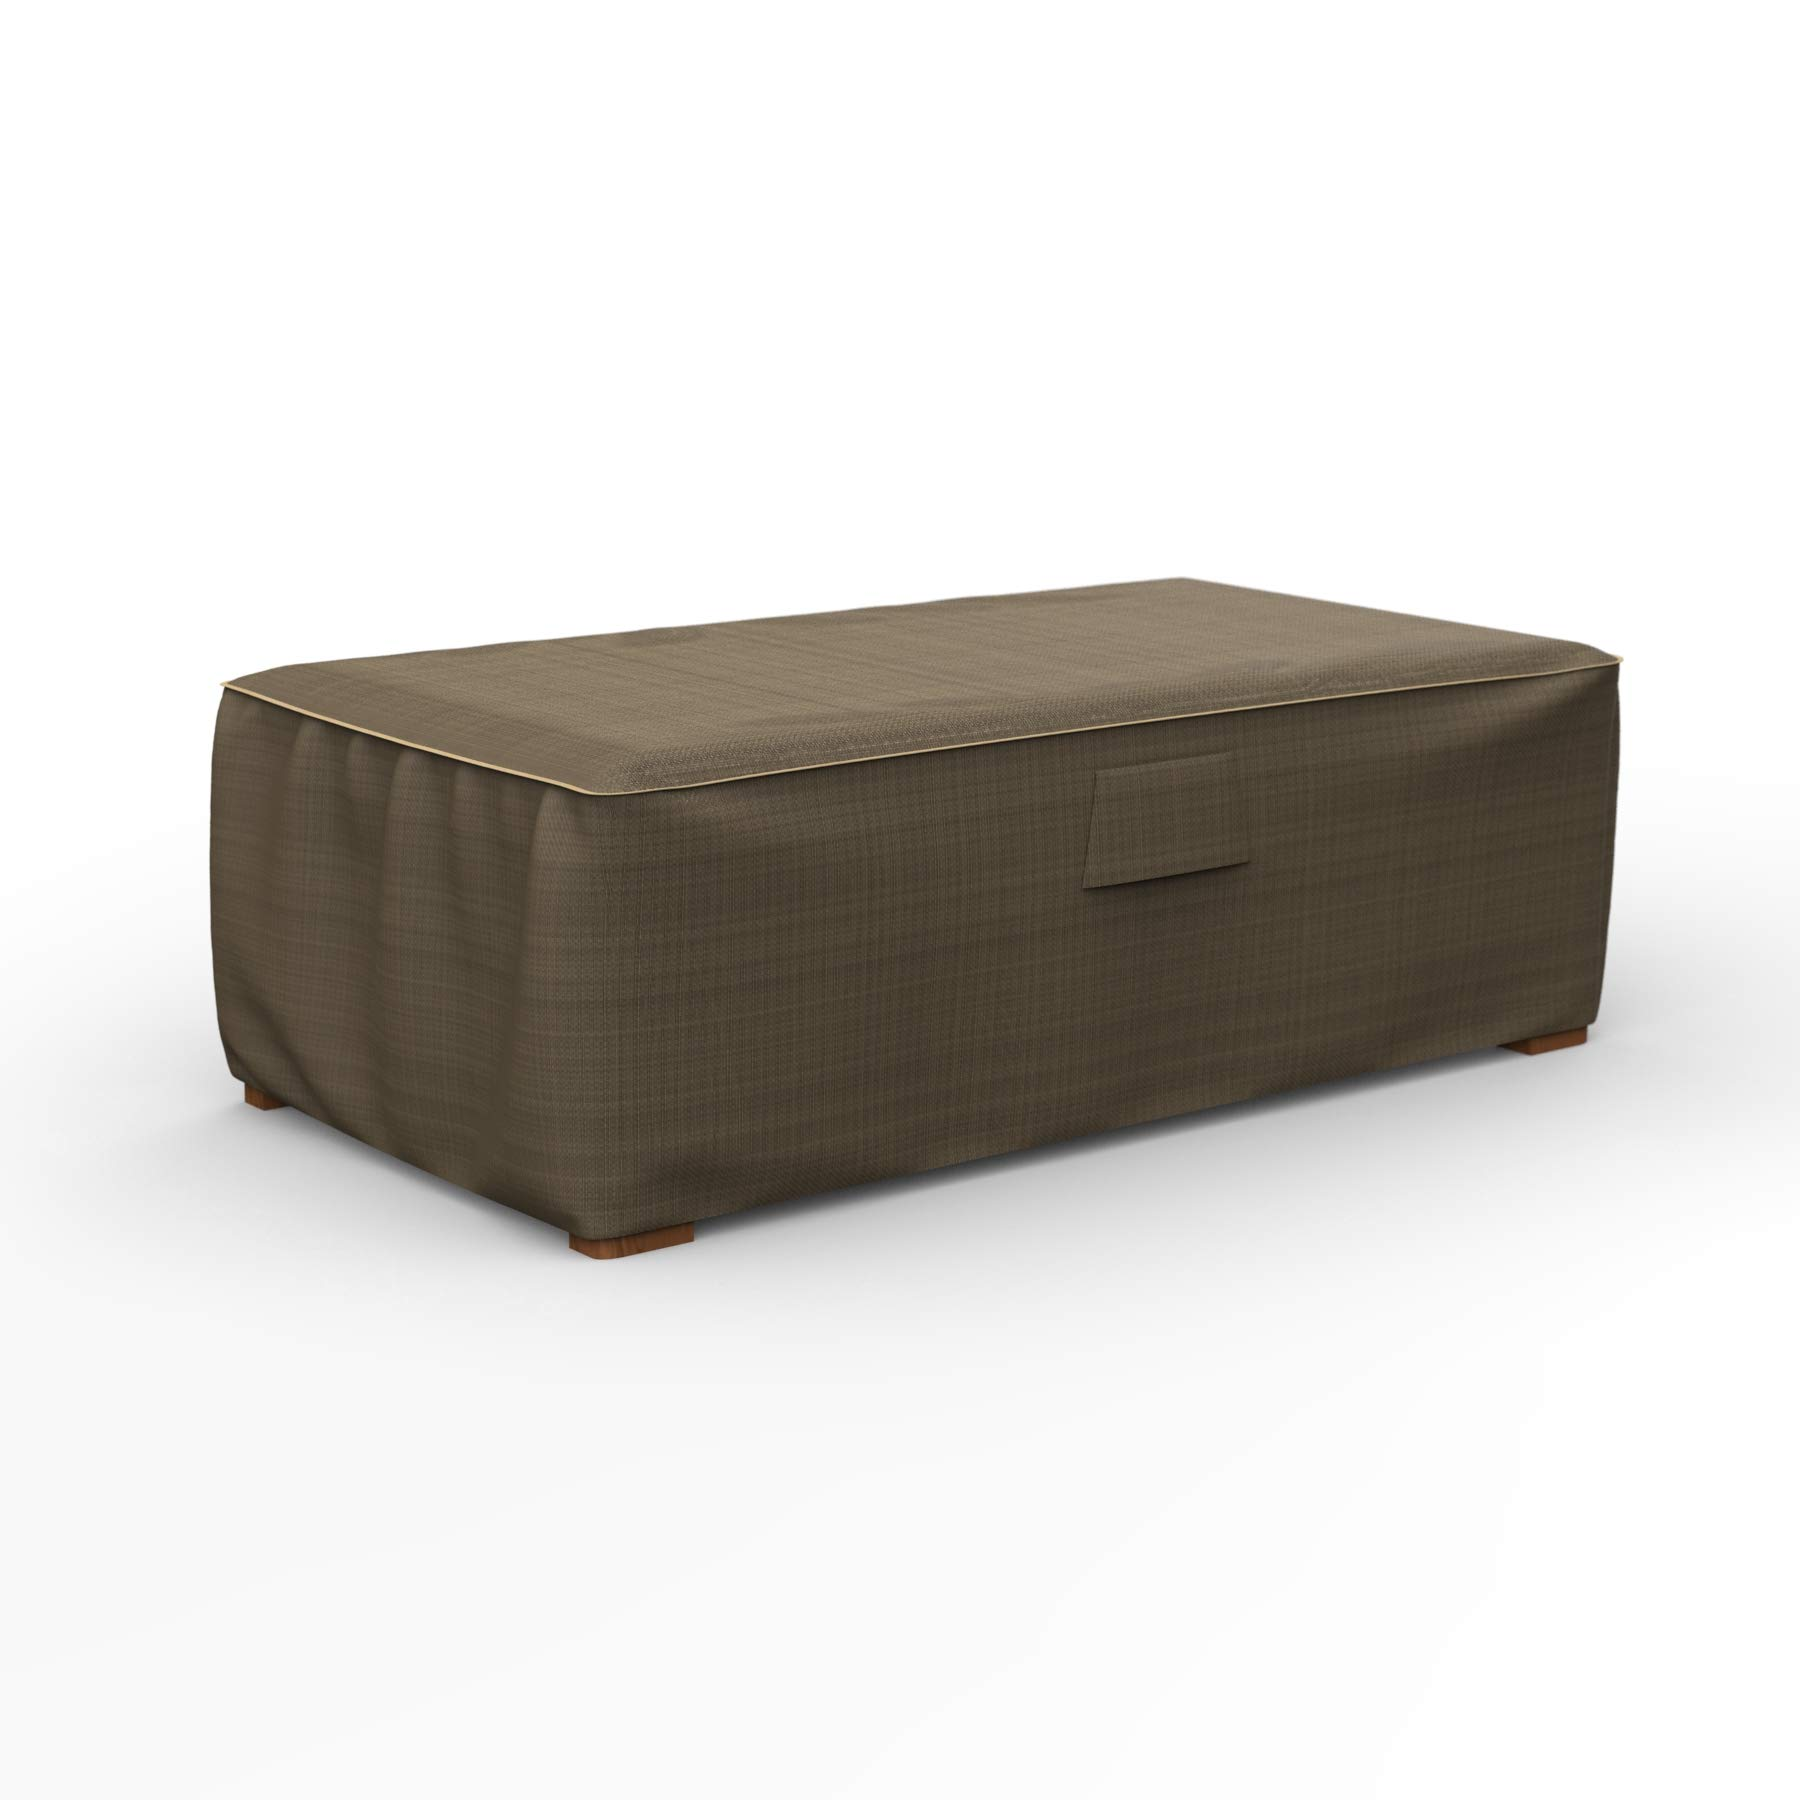 EmpireCovers NeverWet Platinum Outdoor Ottoman Cover, 18'' H x 33'' W x 25'' L (Black and Tan Weave)